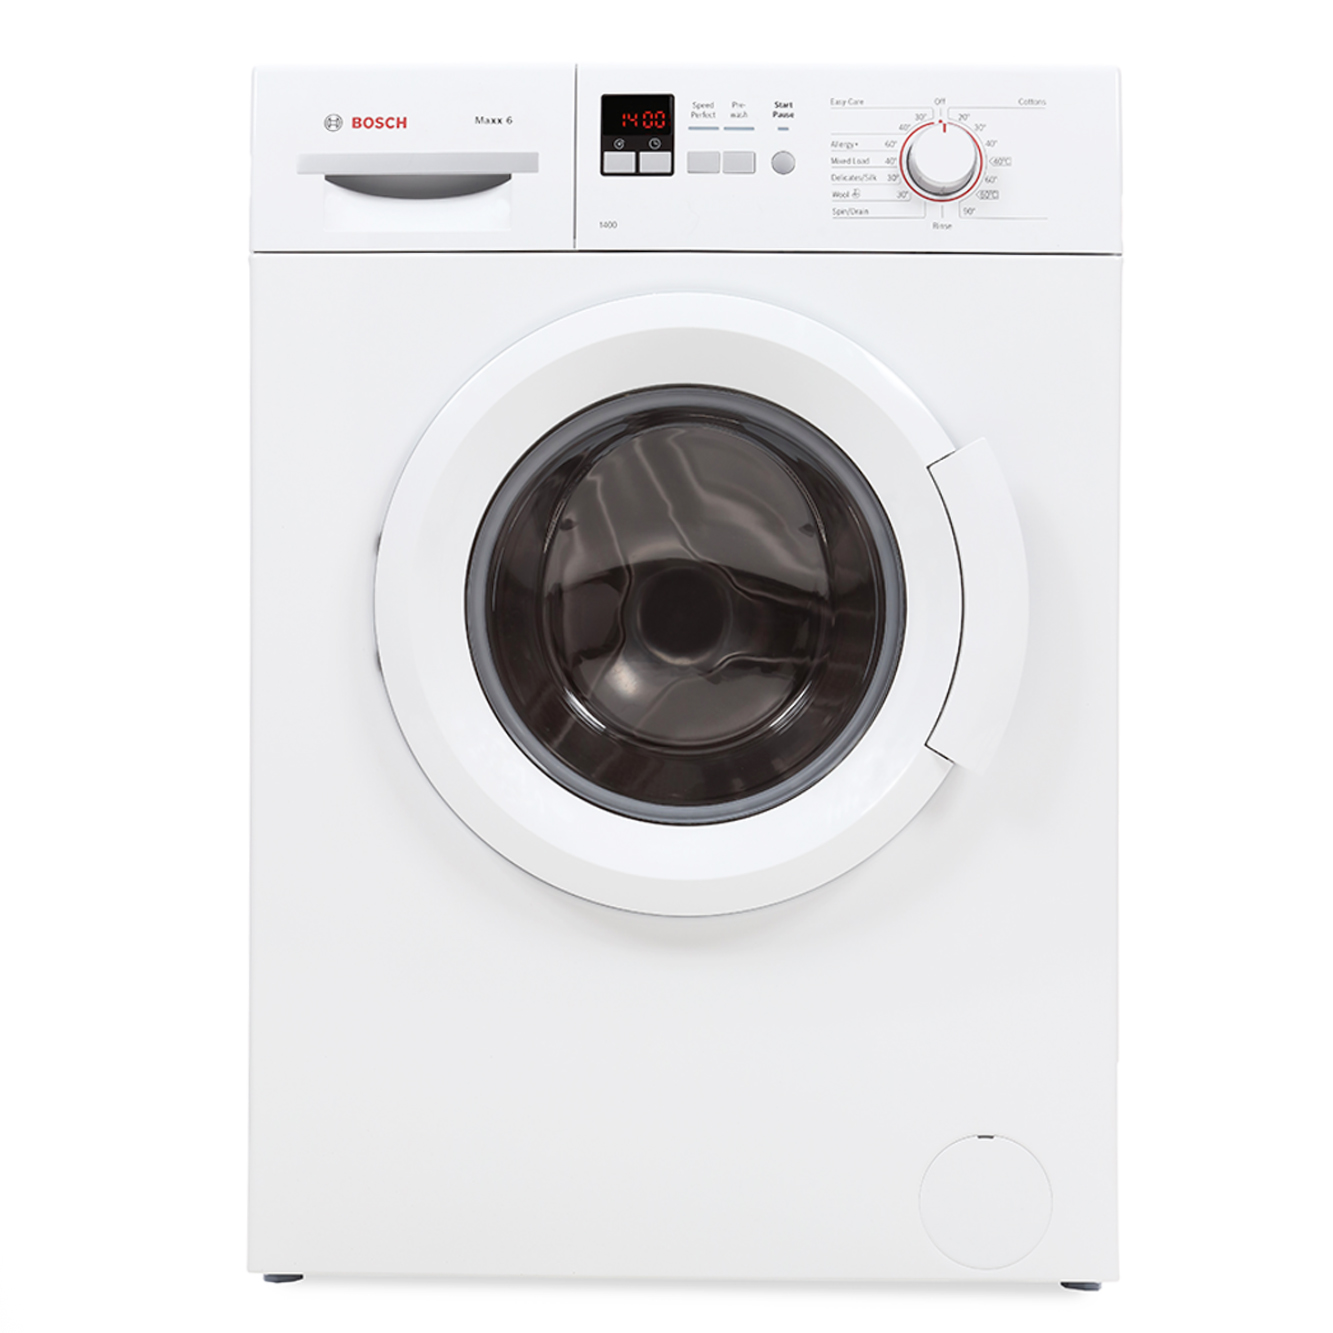 bosch maxx 6 wab28162gb washing machine wab28162gb. Black Bedroom Furniture Sets. Home Design Ideas